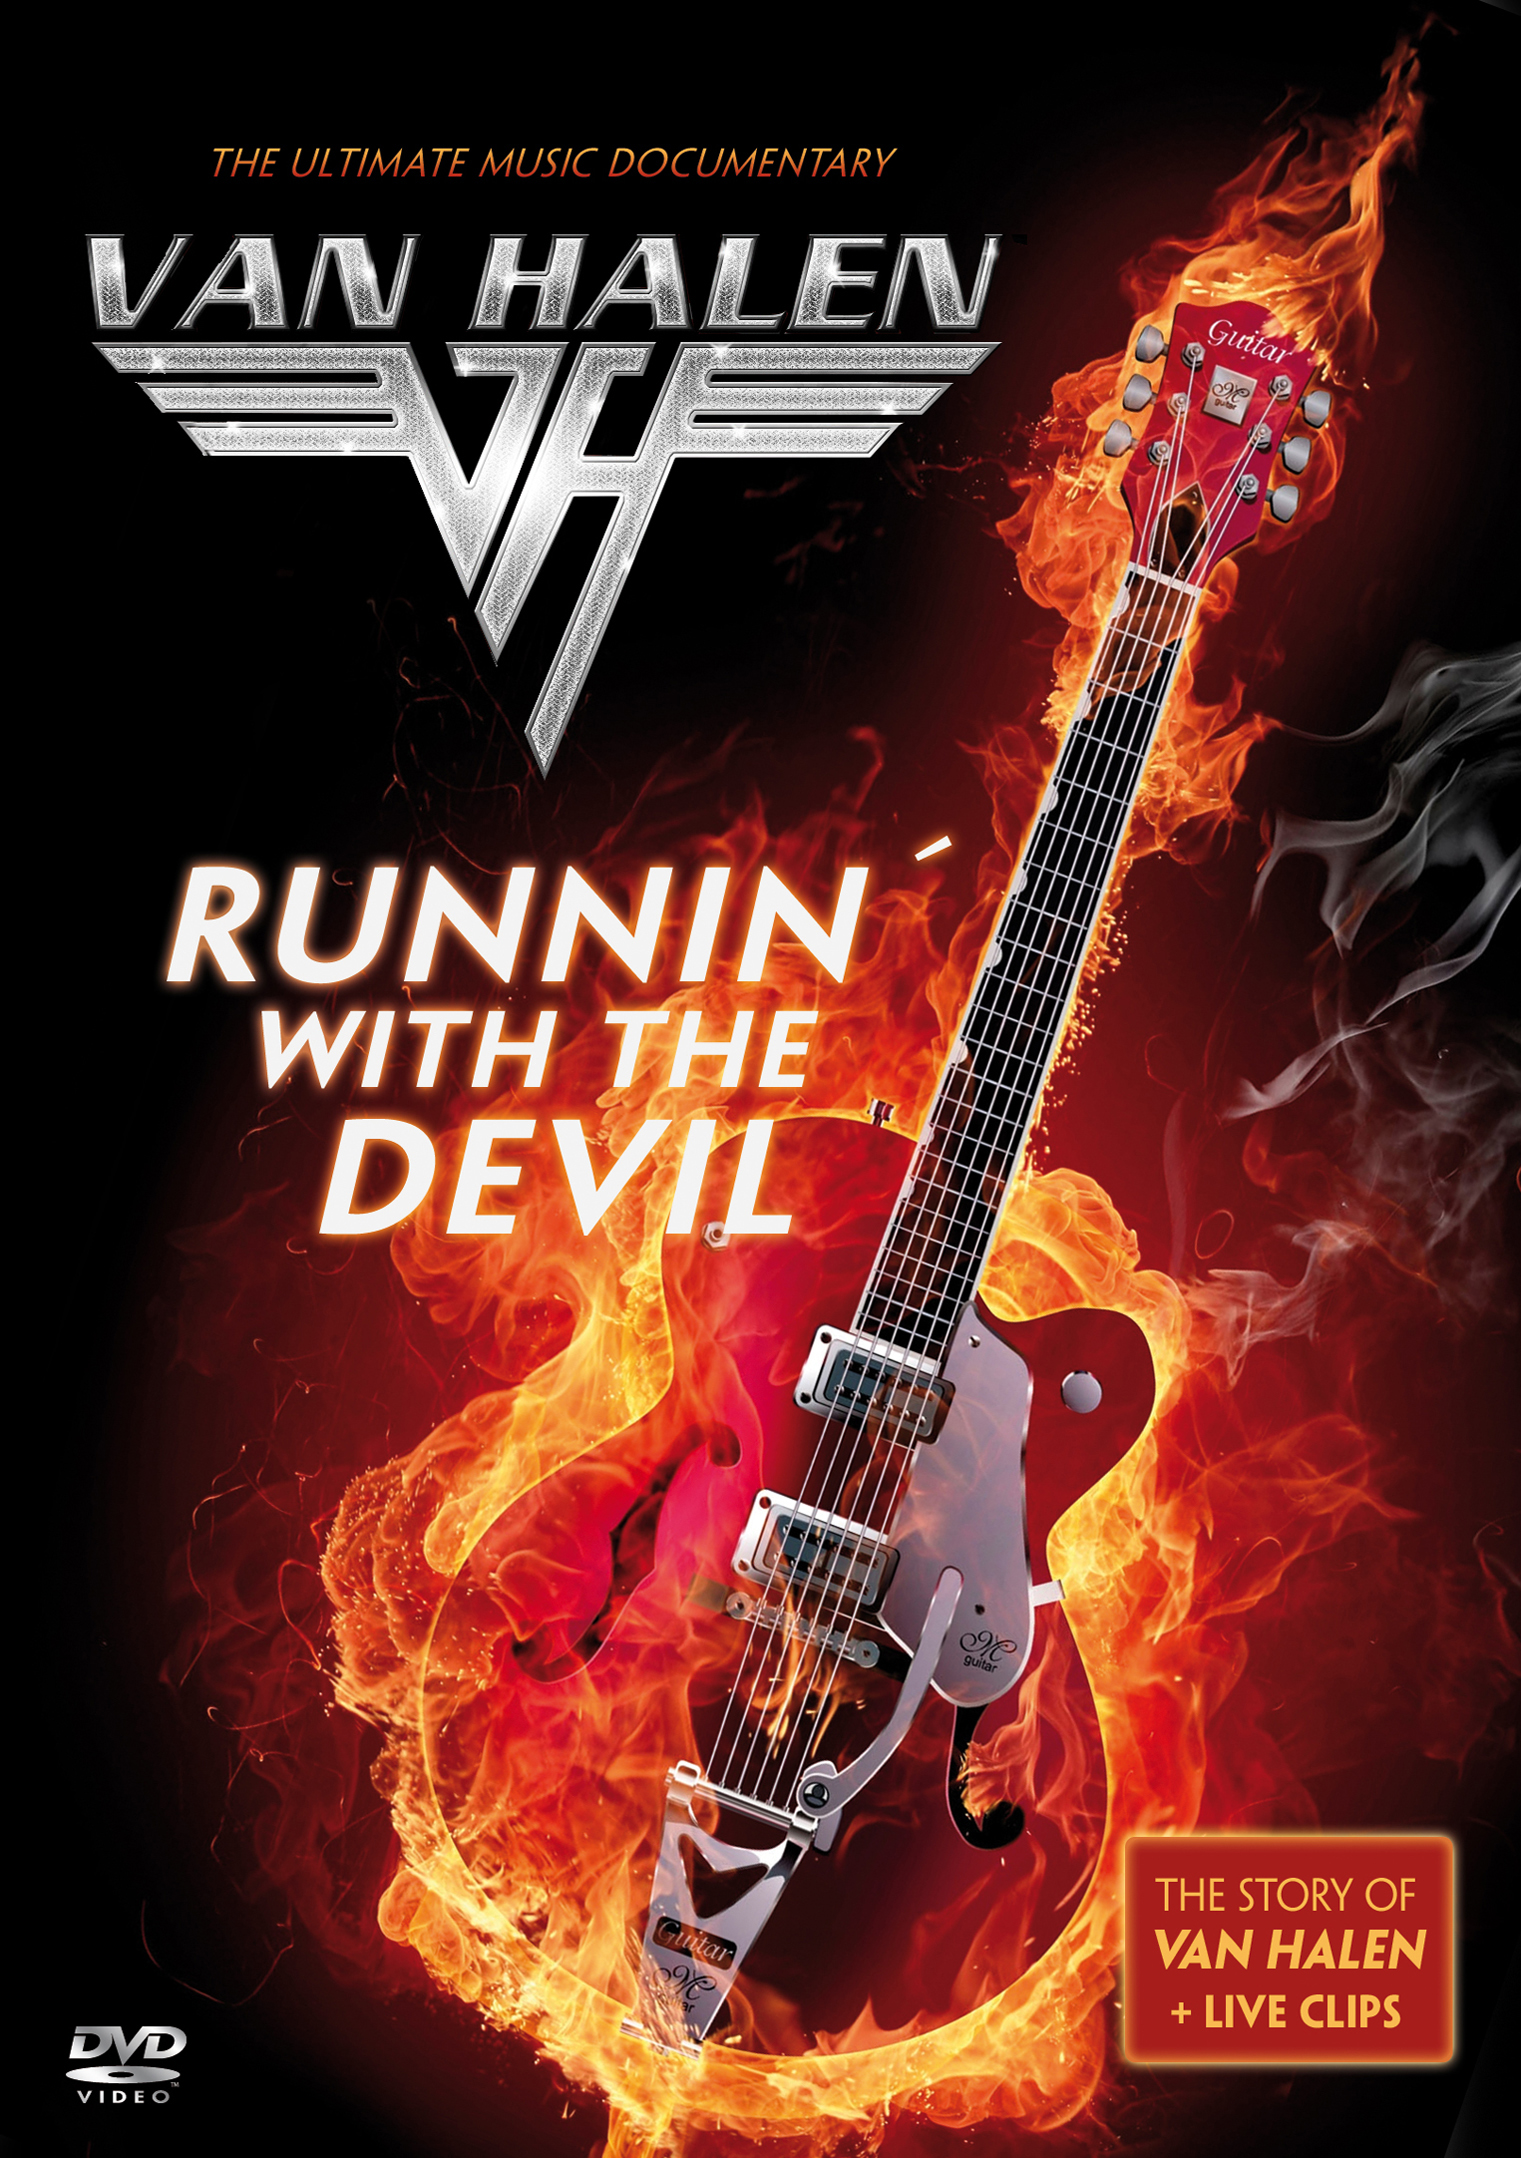 Van Halen: Runnin' with the Devil - A Musical Documentary